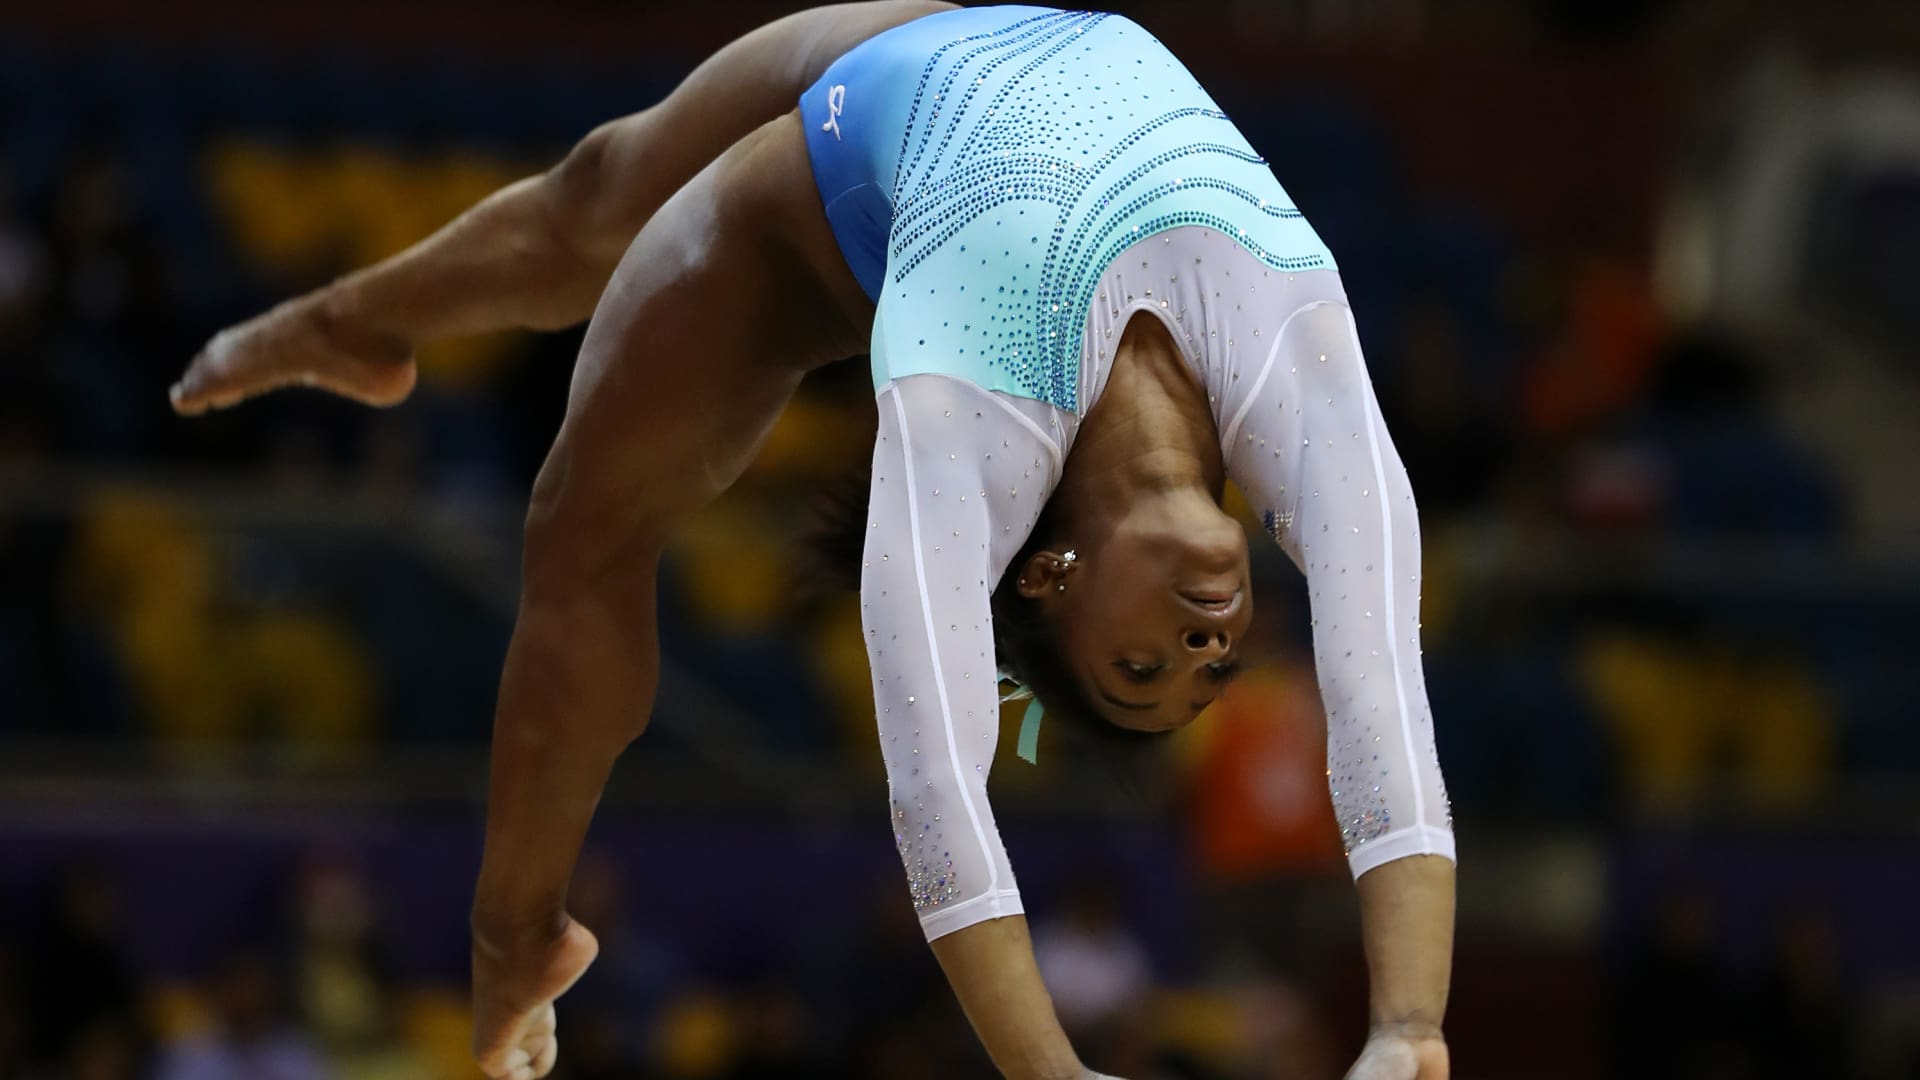 Great Moments and Facts Gymnastics: Records